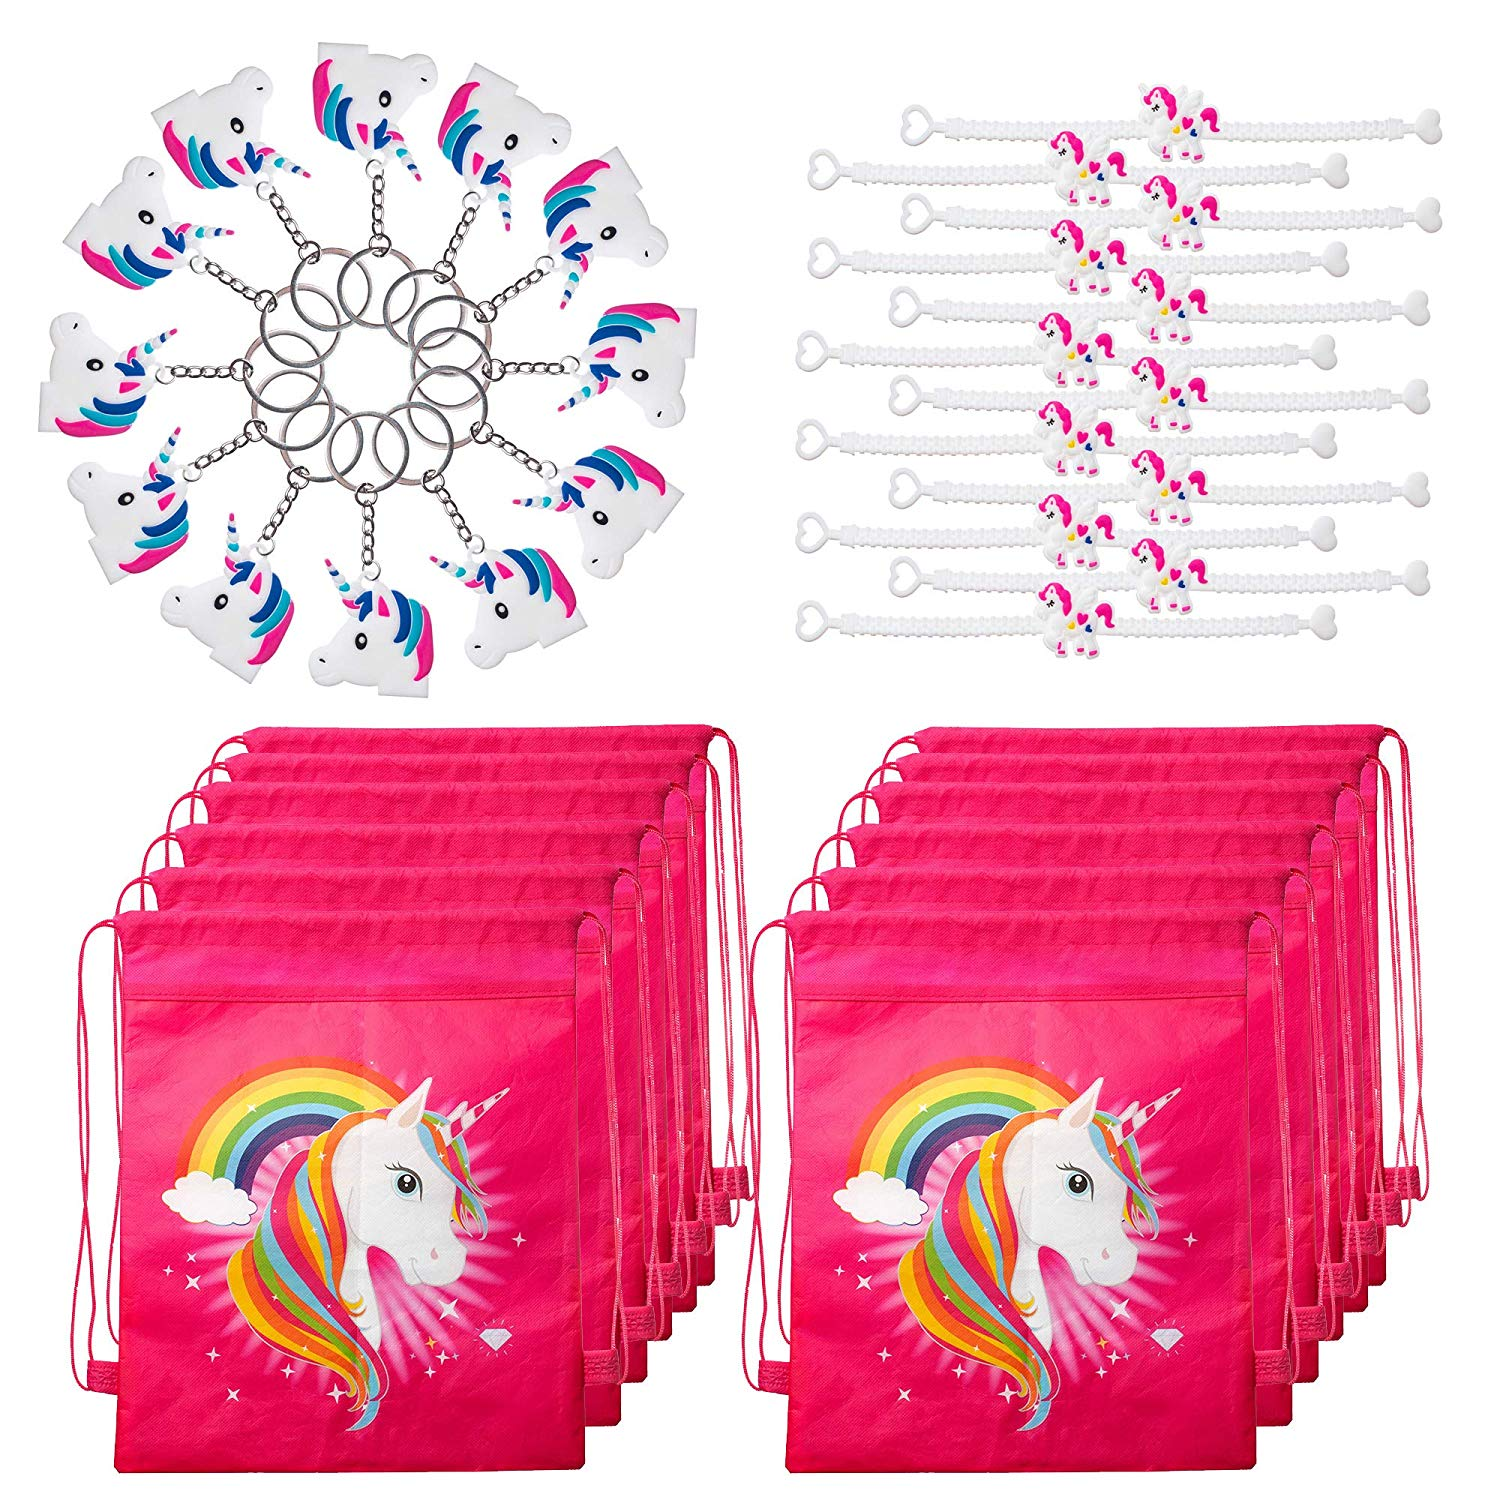 Unicorn Party Favors Pack with Unicorn Goodie Bags, Unicorn Bracelets, and Unicorn Keychains for 12 Kids